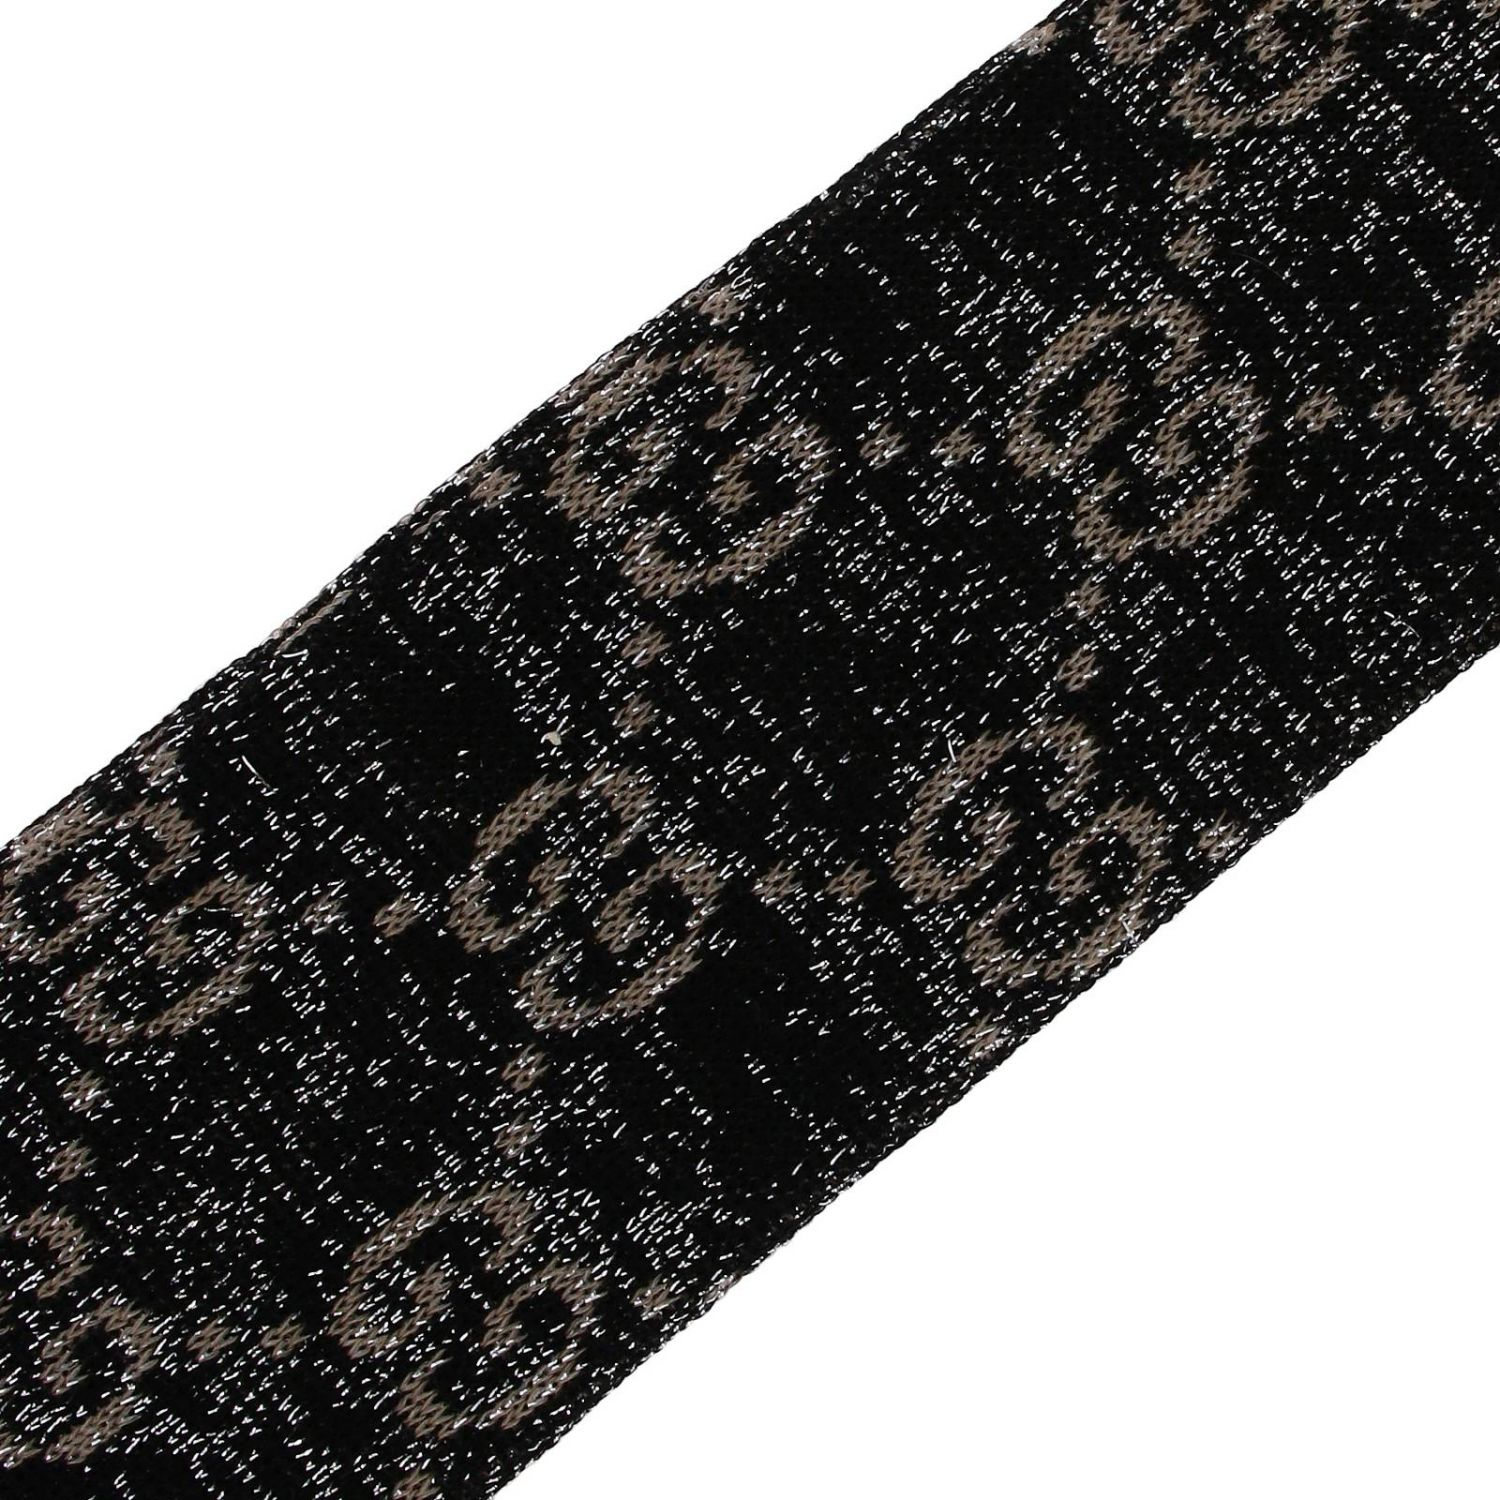 Gucci socks with all over GG Supreme logo black 2